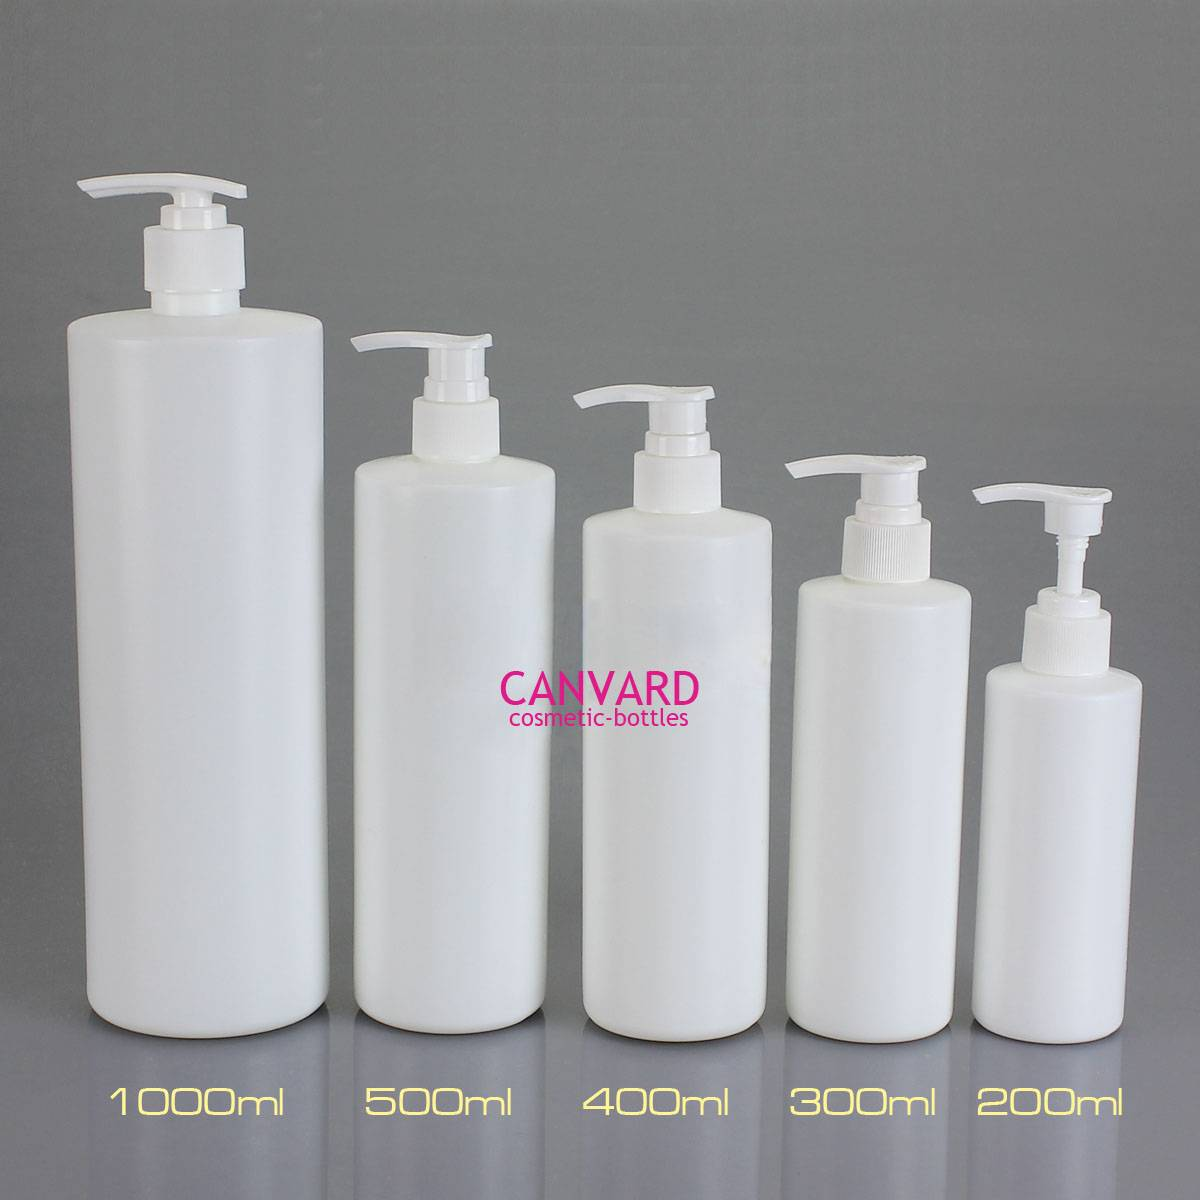 Body massage bottle, body lotion bottle, body plastic bottle, body cosmetic bottle